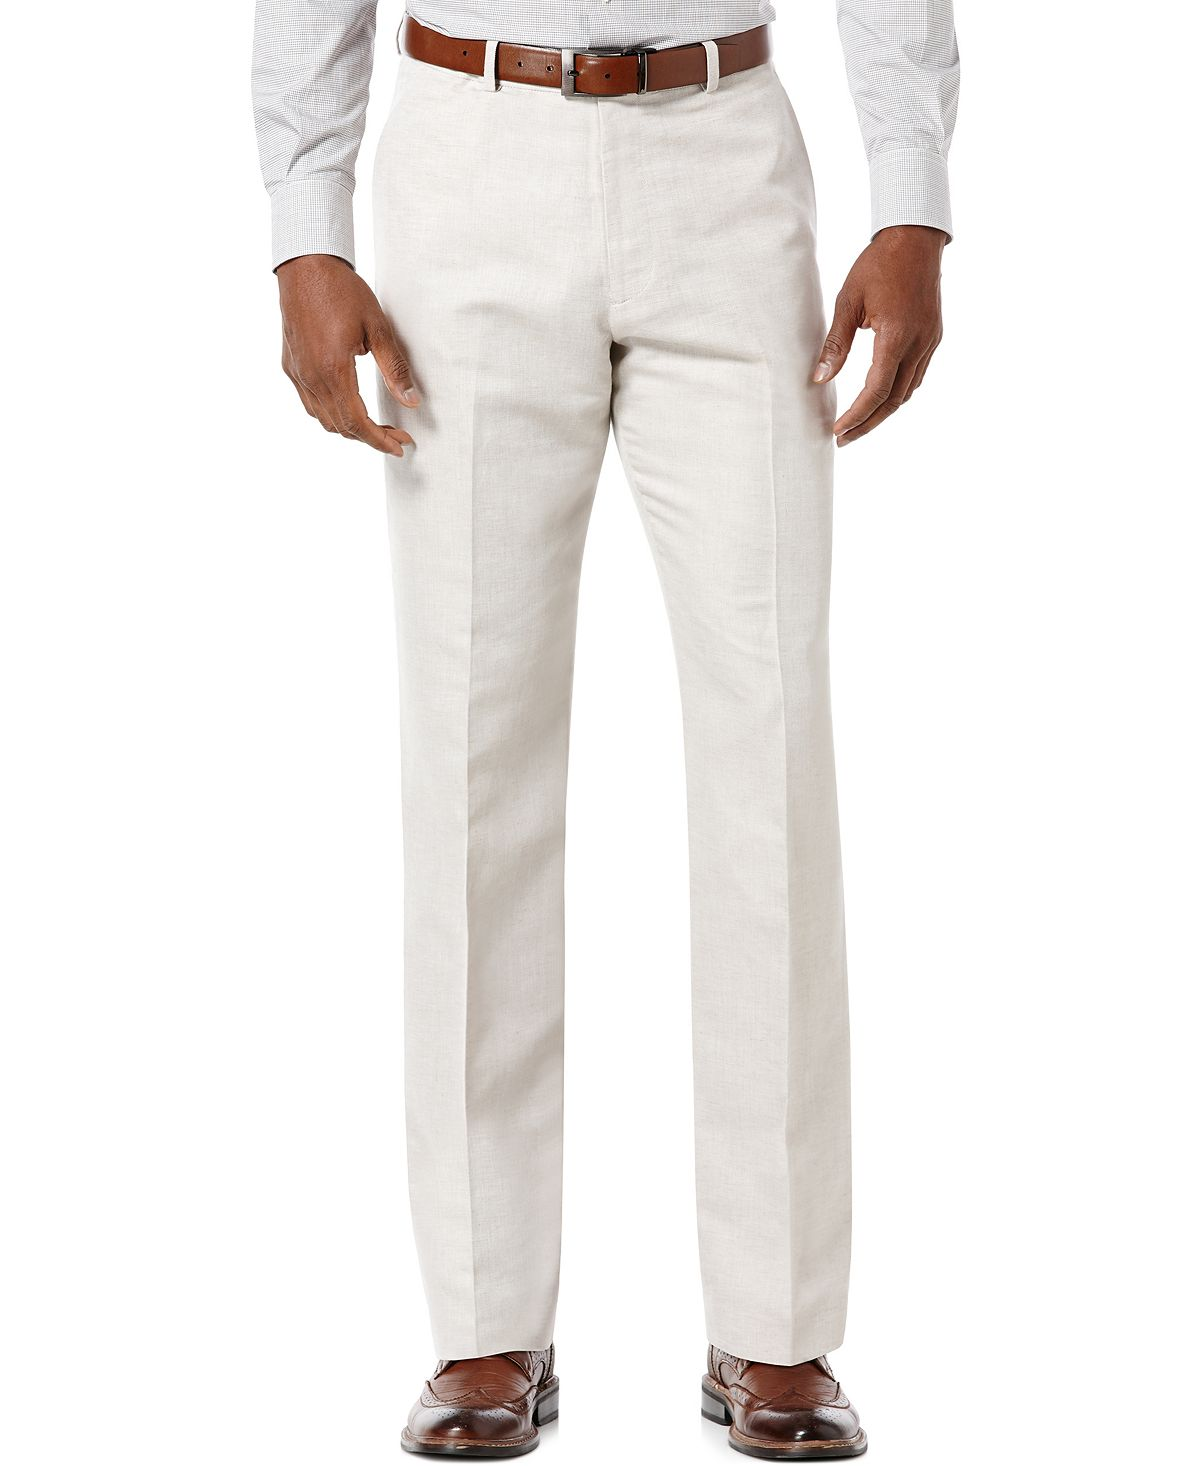 Perry Ellis Linen Blend Solid Twill Pants Natural Linen